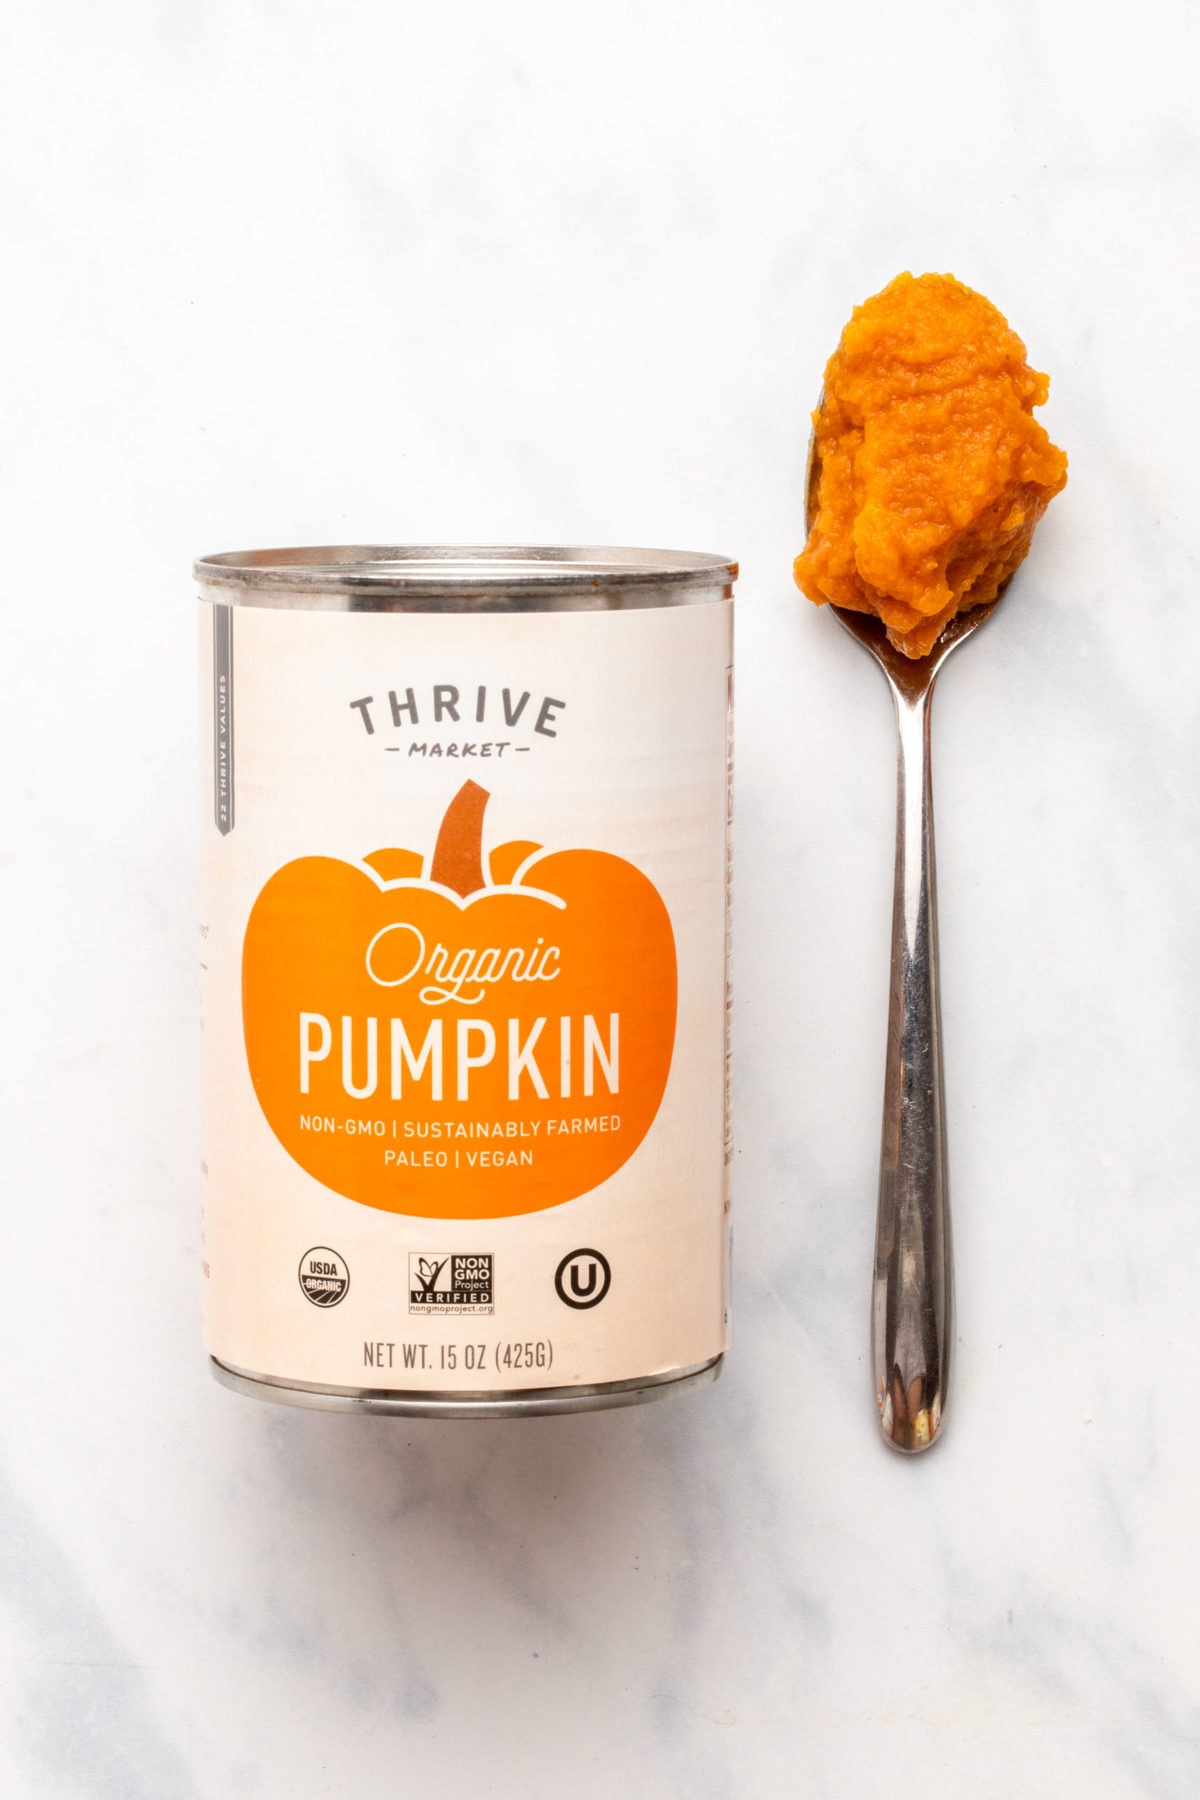 Can of Thrive Market pumpkin puree next to spoon with puree on it